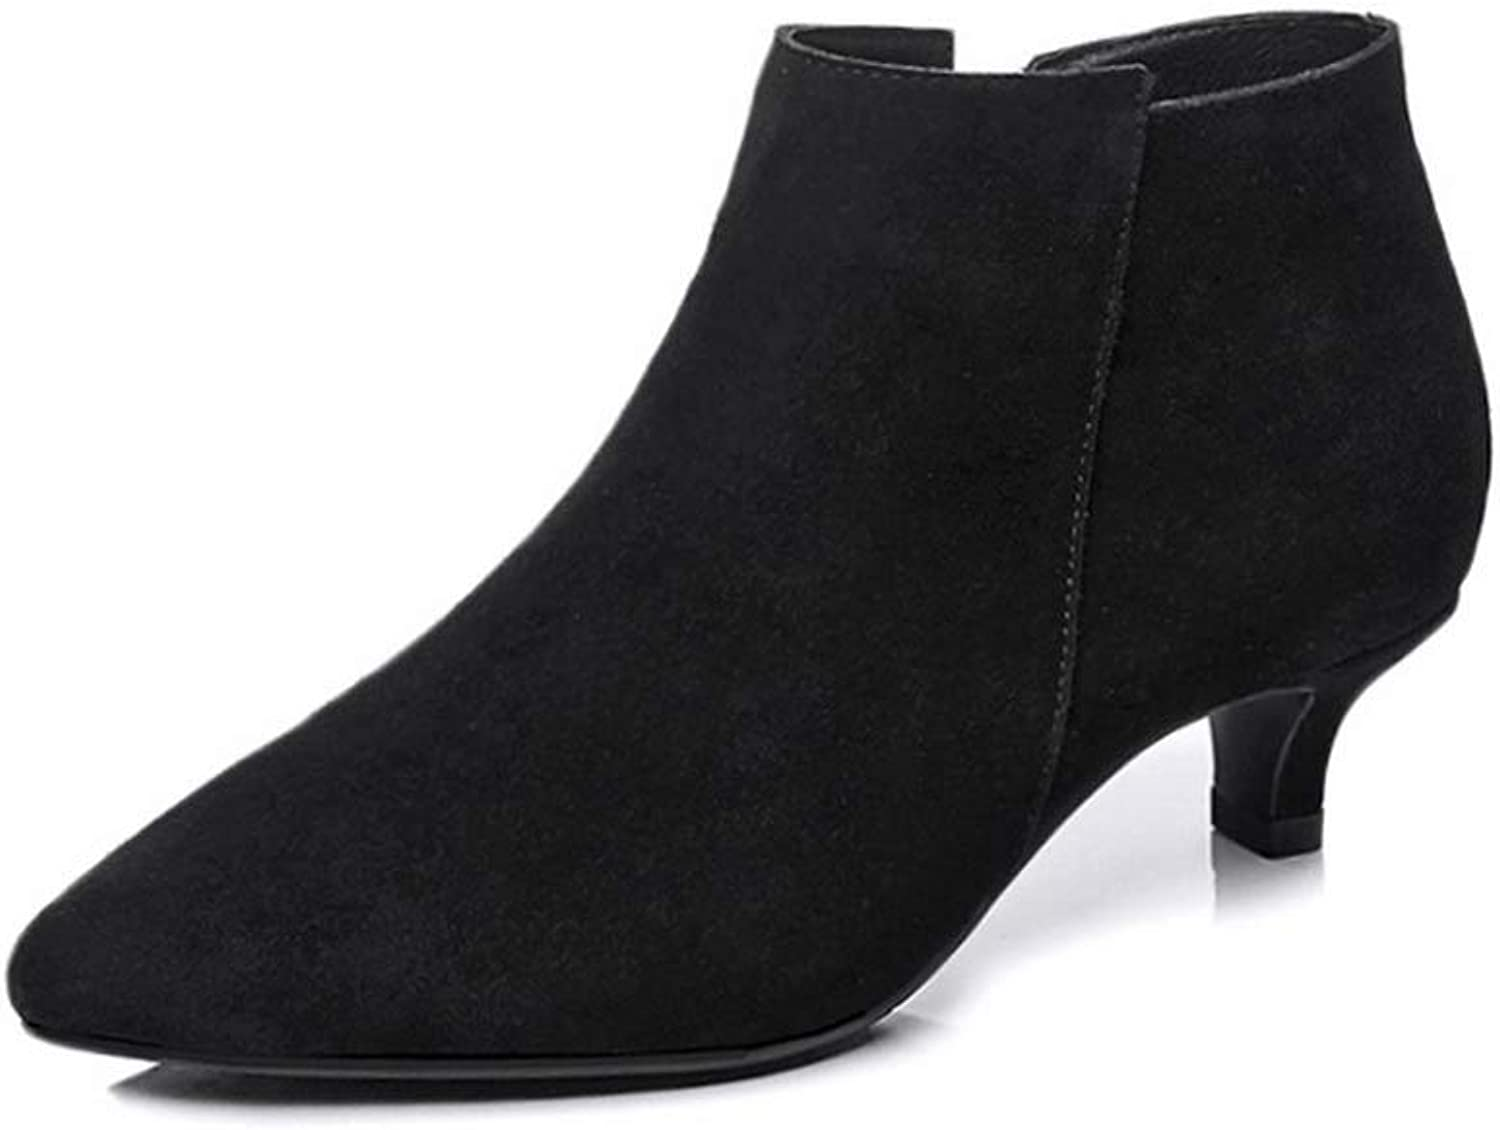 AdeeSu Womens Casual Dress Solid Urethane Boots SXE04849